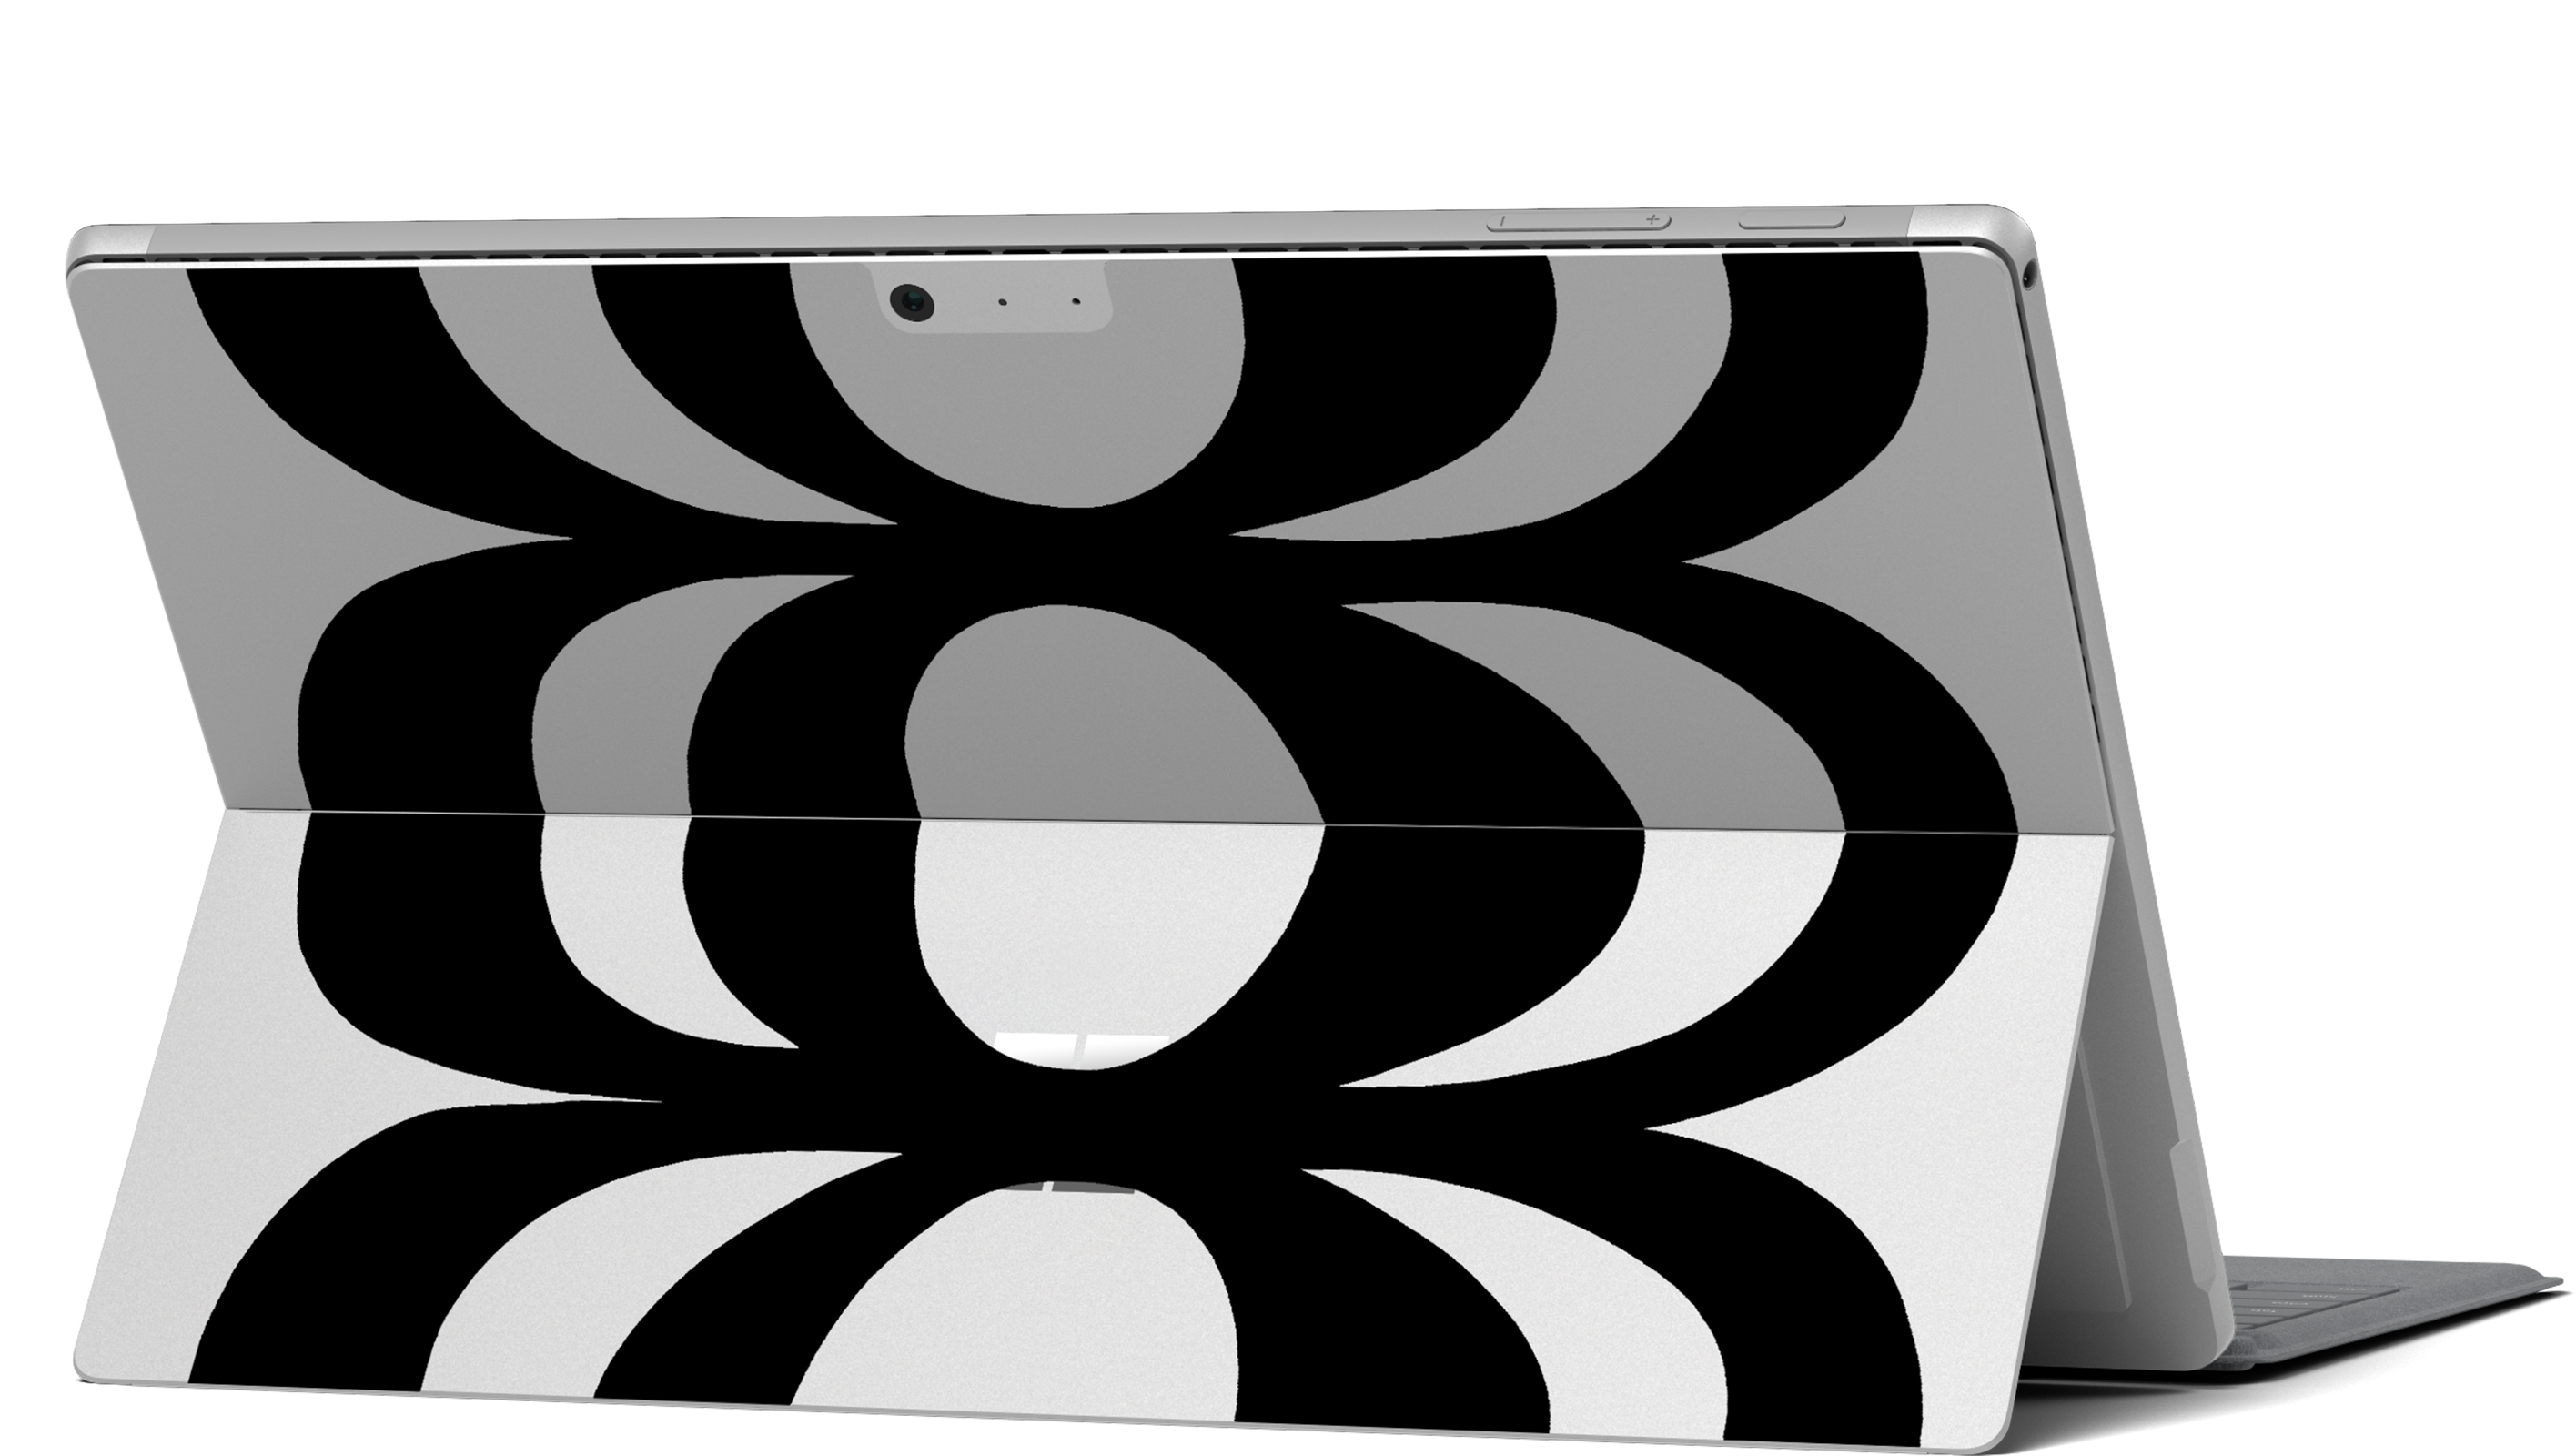 Marimekko Skin for Surface Pro (Kaivo)